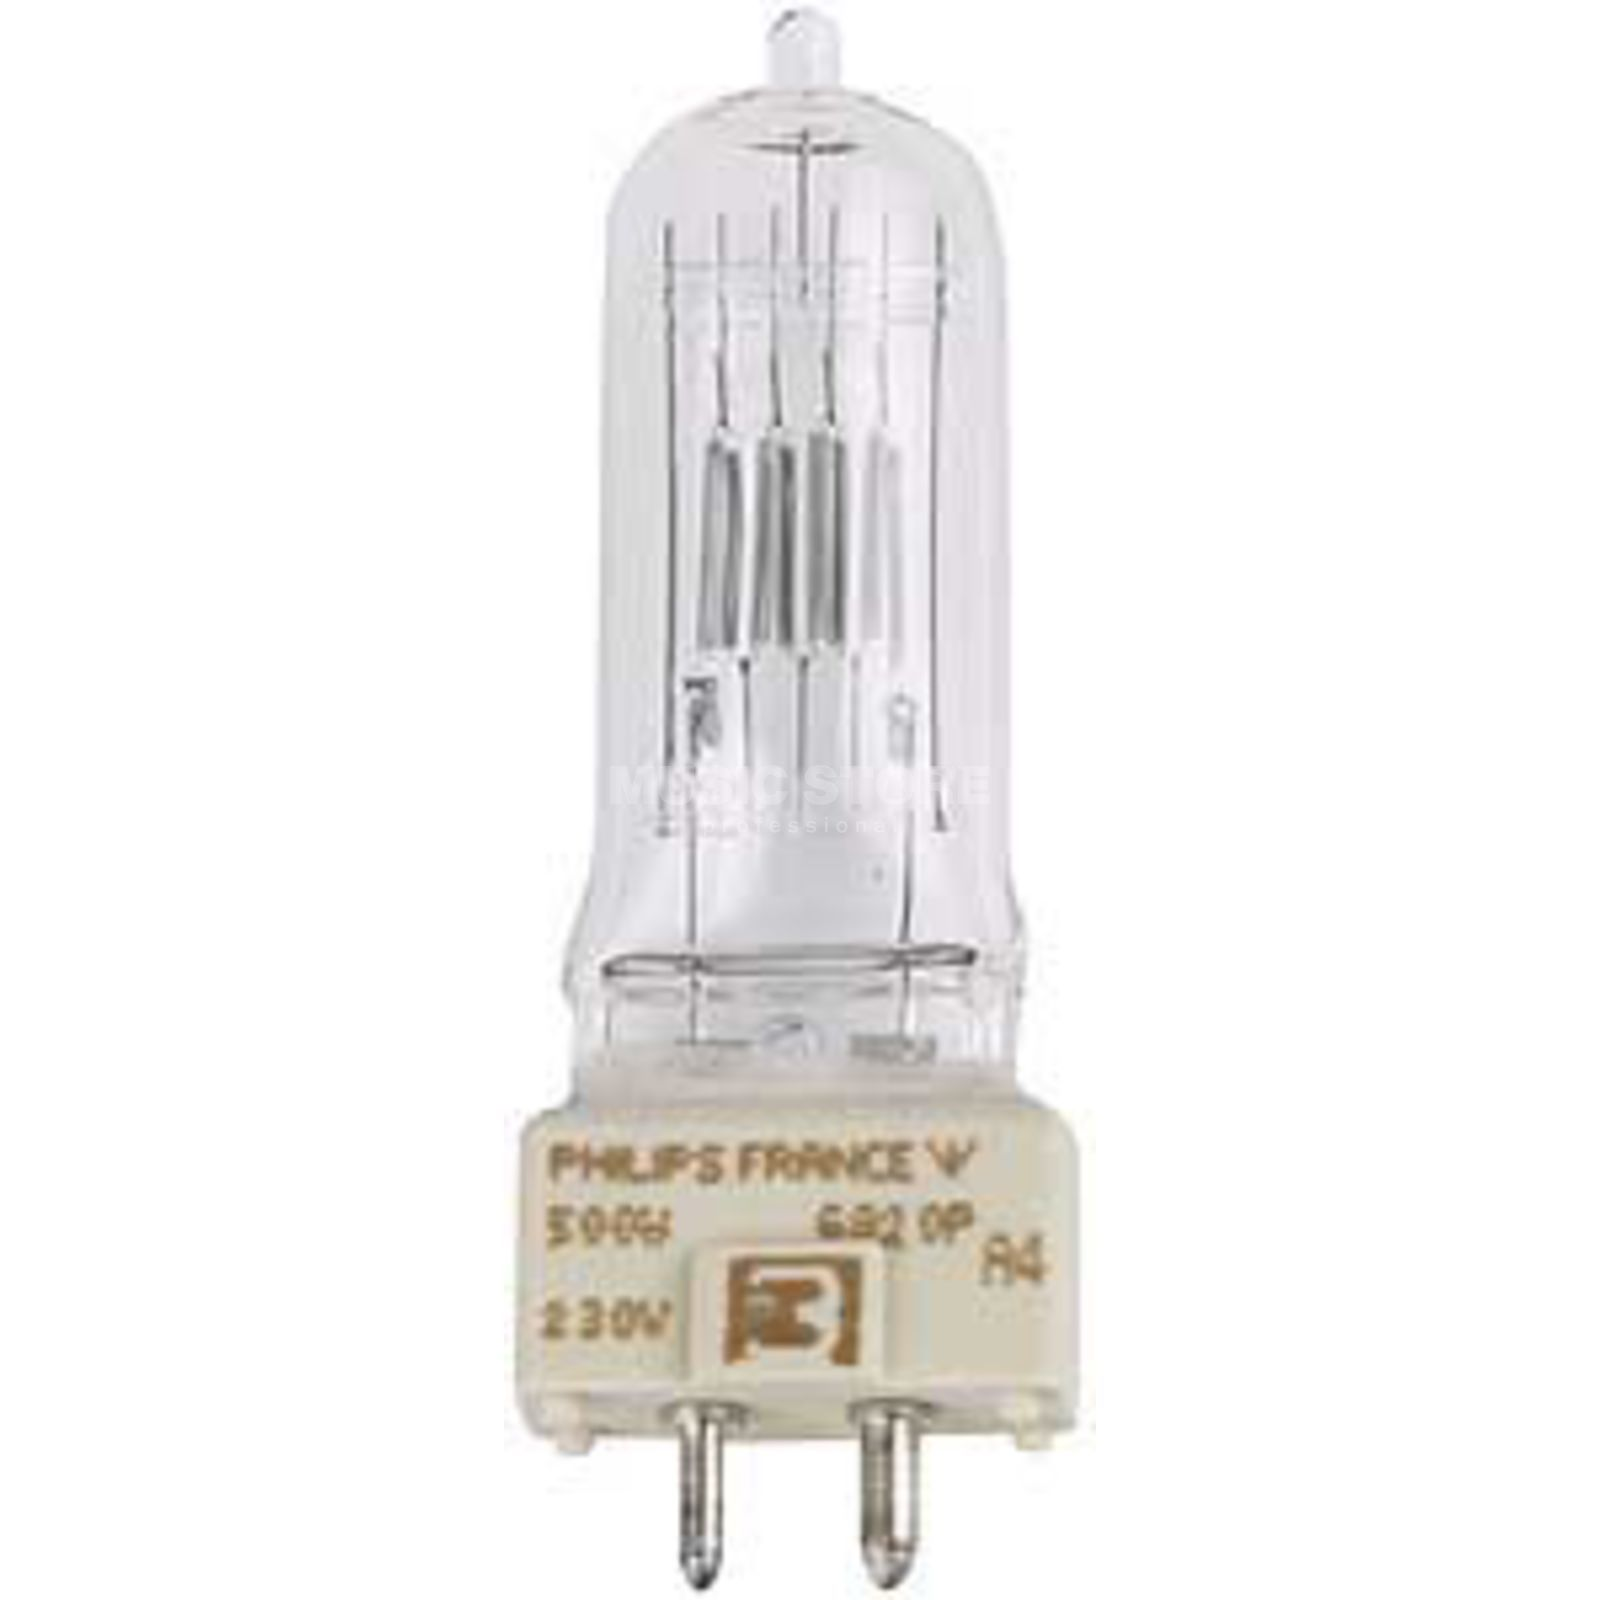 PHILIPS Bulb 500W/240V T25 GY9.5  Product Image